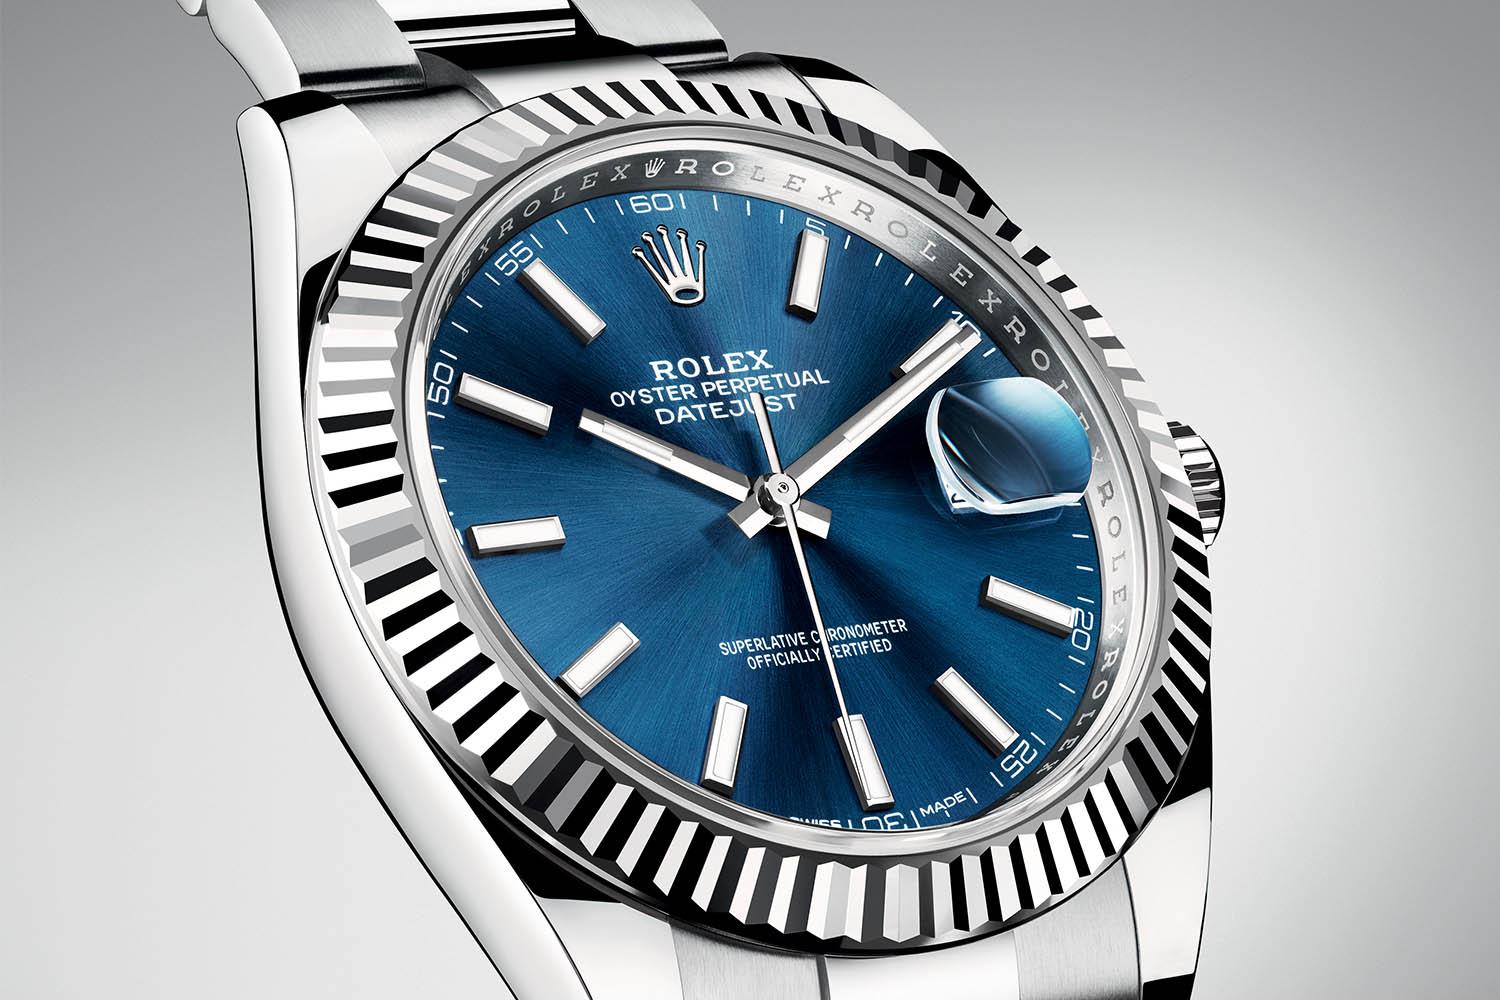 Rolex Datejust 41 Steel Baselworld 2017